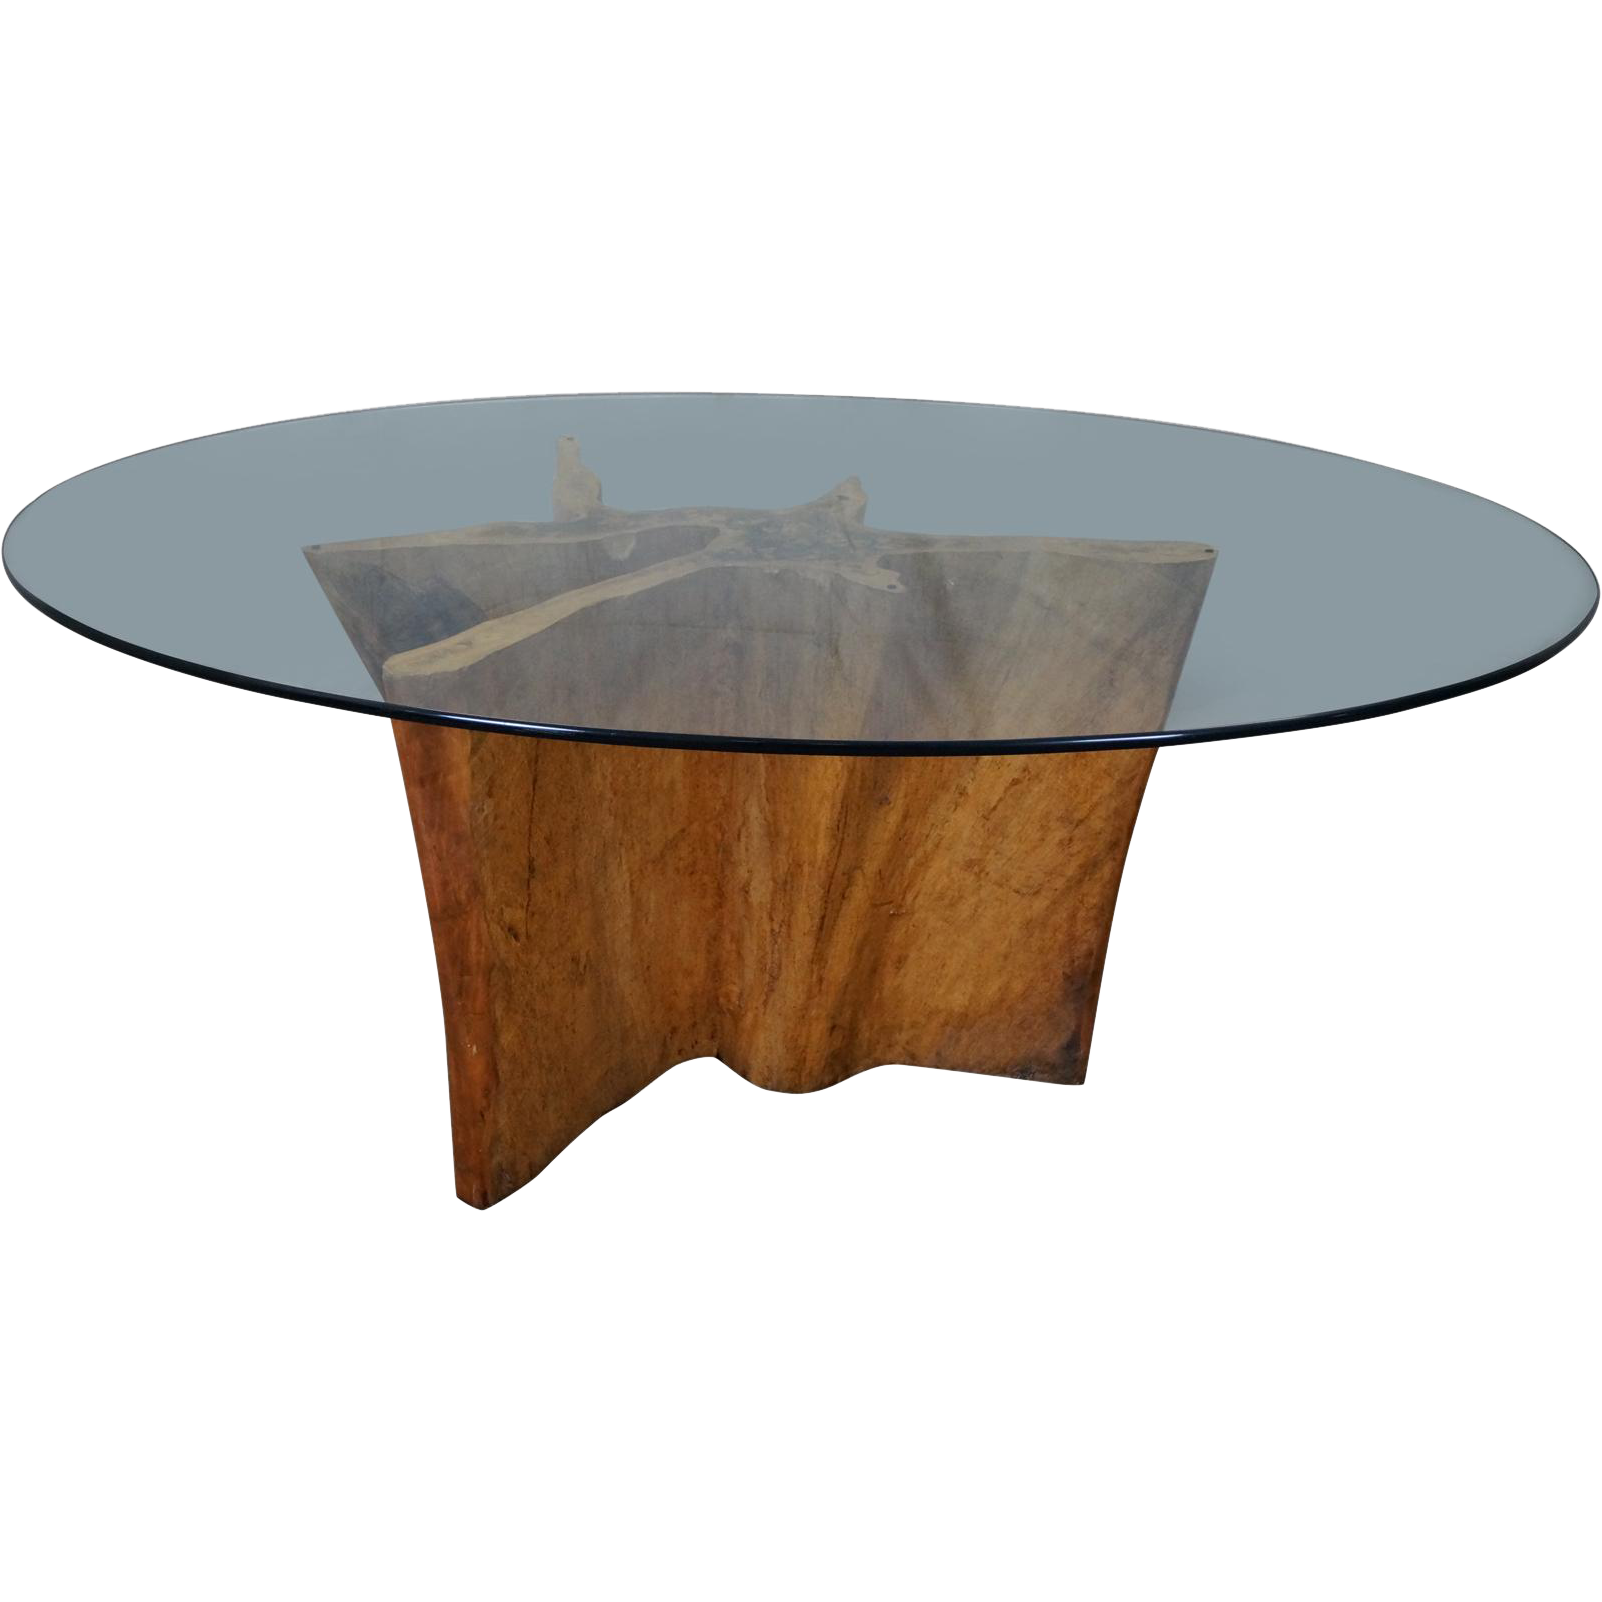 Cypress Tree Trunk Free Form Large Glass Top Dining Table From Bucks